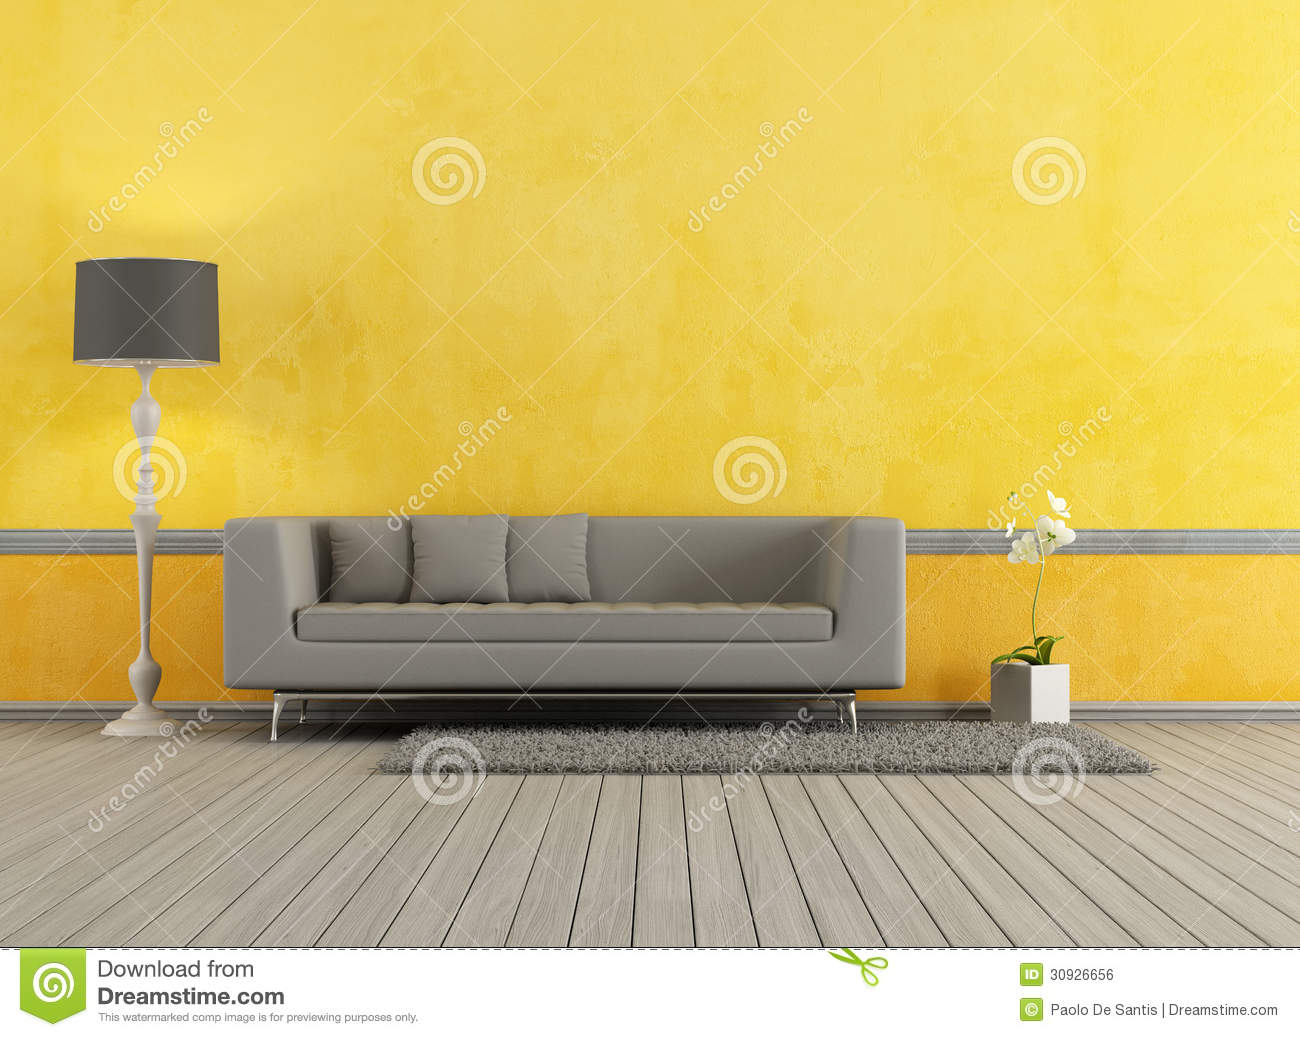 gray and yellow living room royalty free stock image - image: 30926656